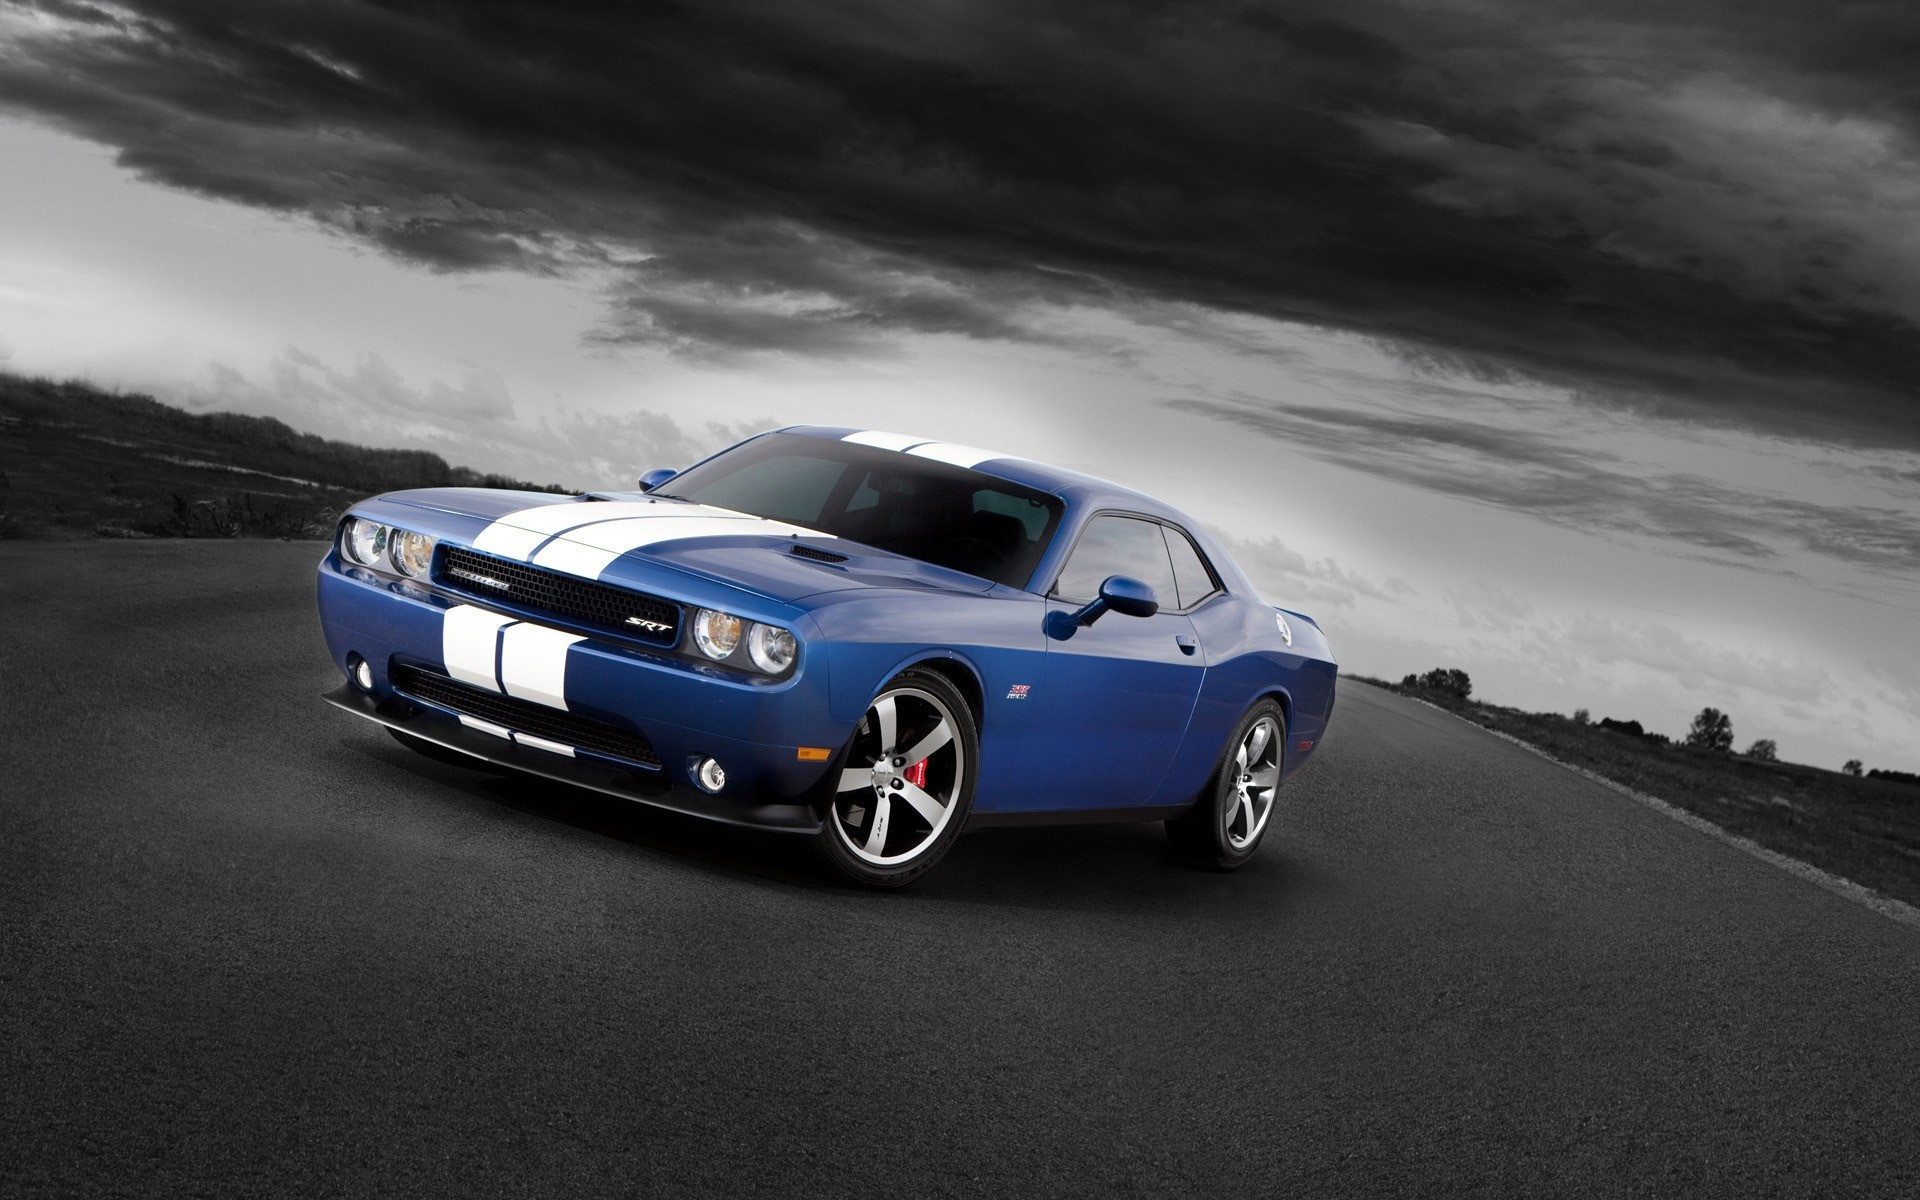 2011 dodge challenger. android wallpapers for free.